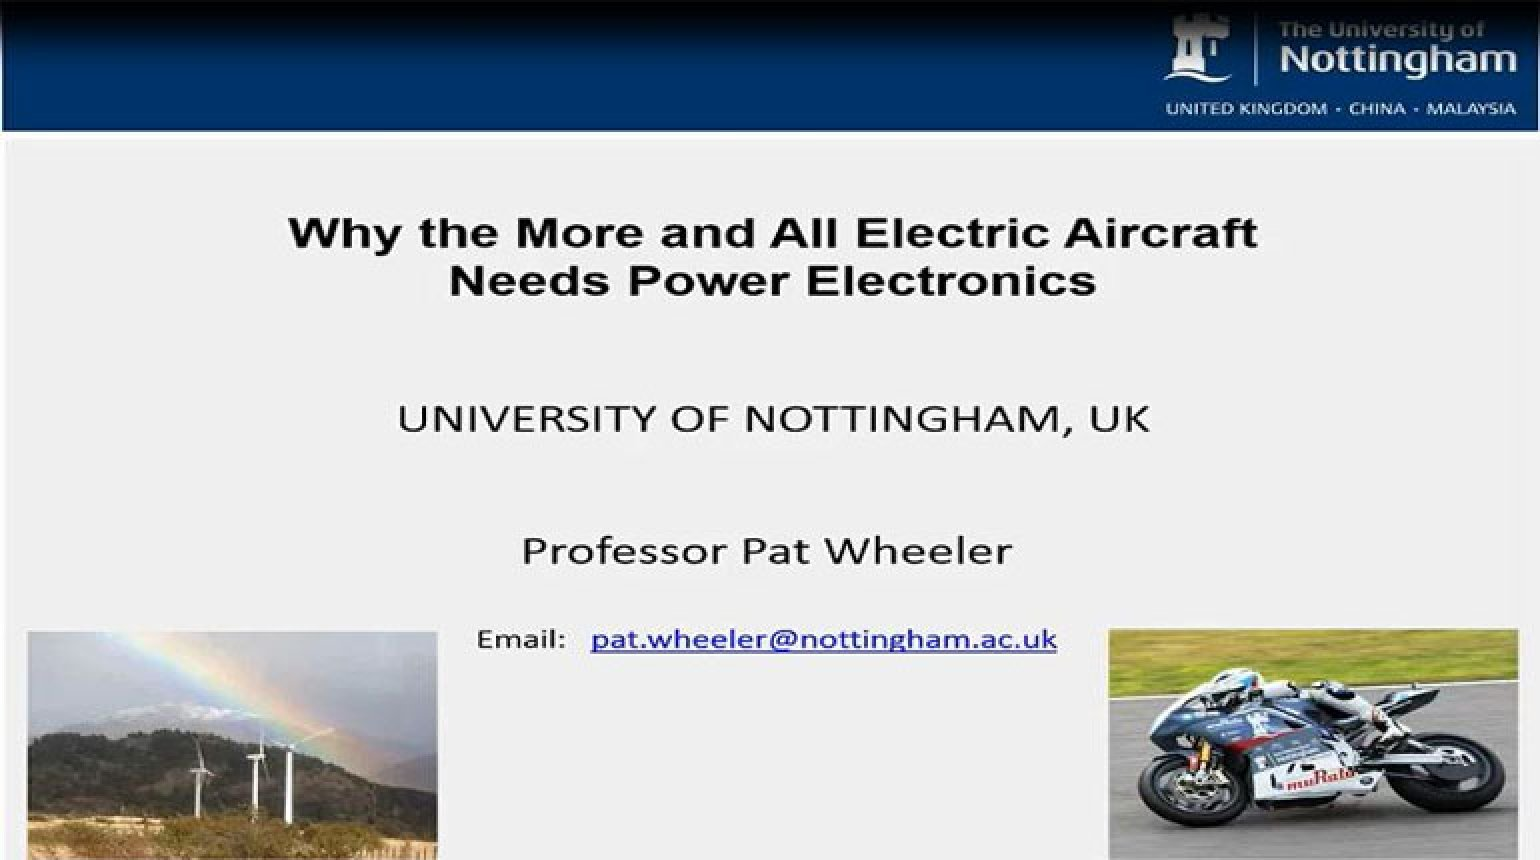 Video - Technology Development from the More Electric Aircraft to All Electric Flight